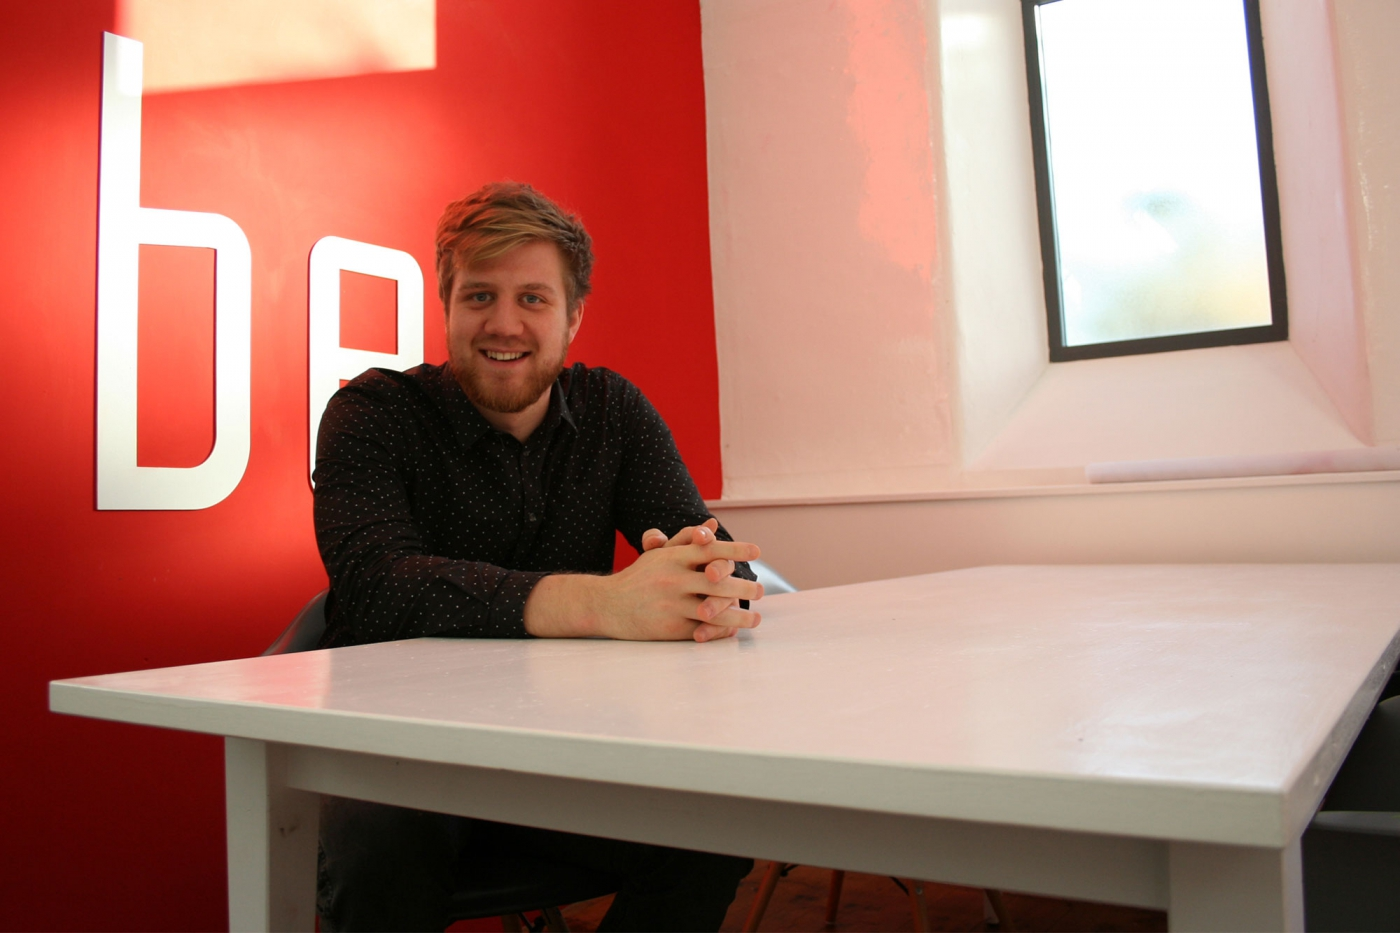 Andy Thompson joins the team at NE40